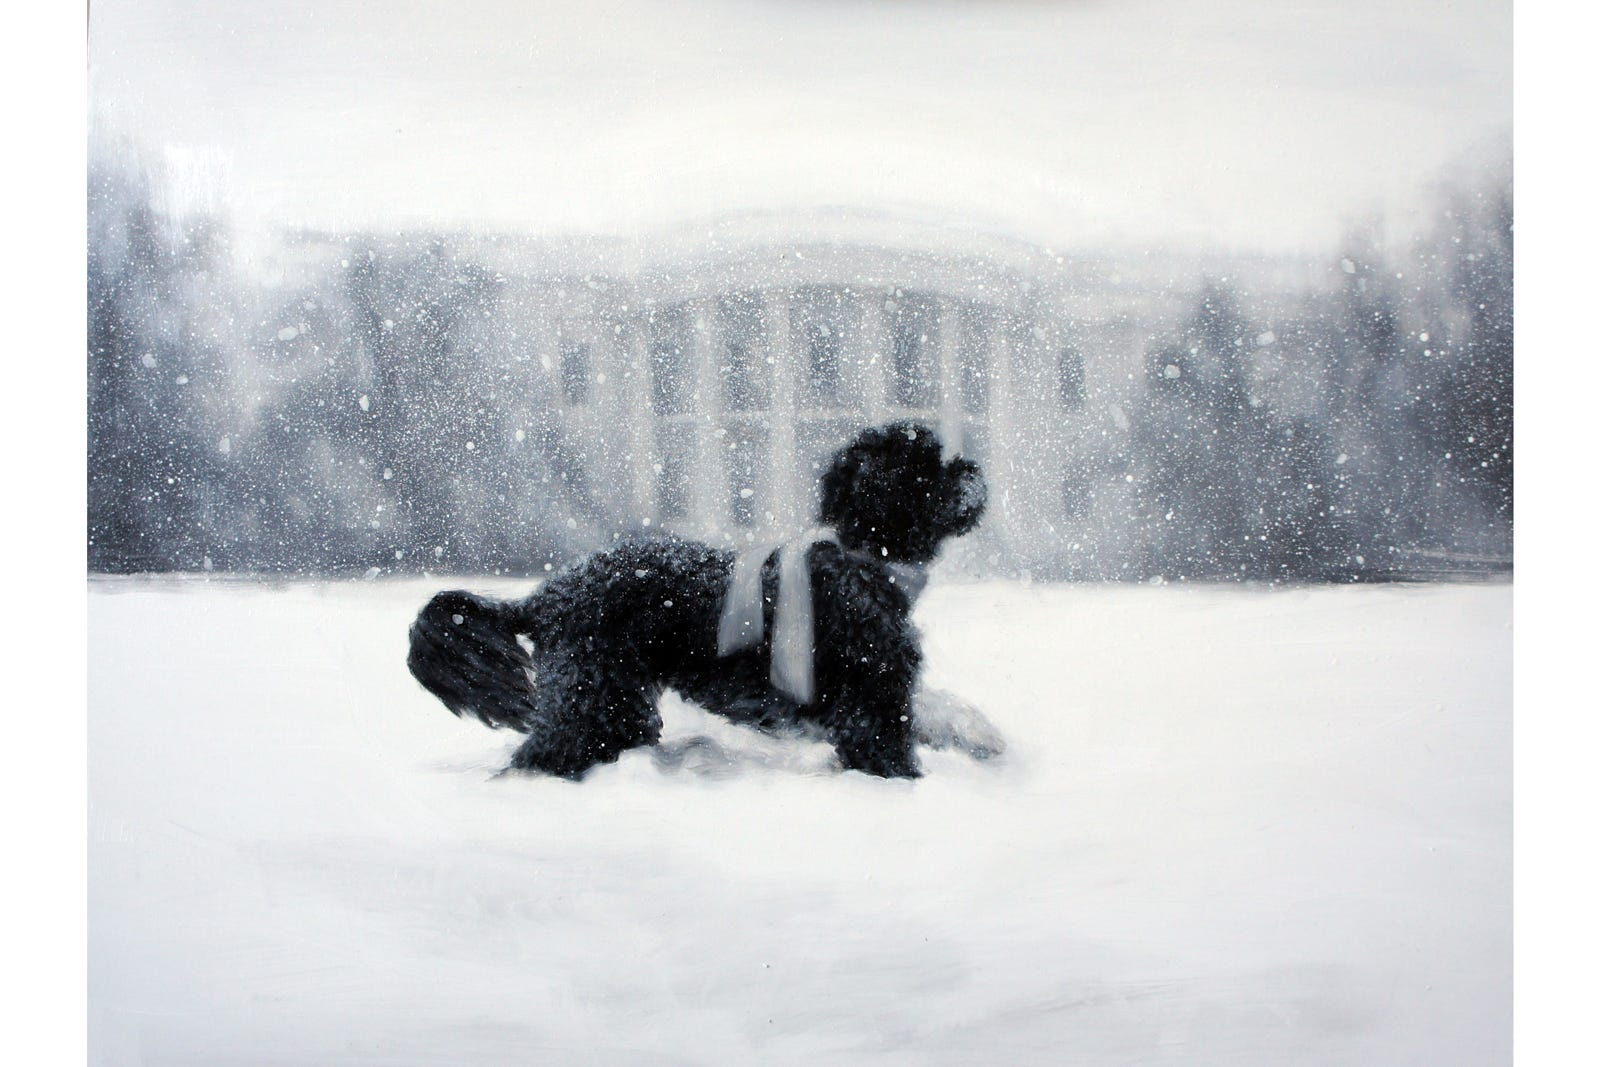 President Obamas Holiday Cards Last Christmas